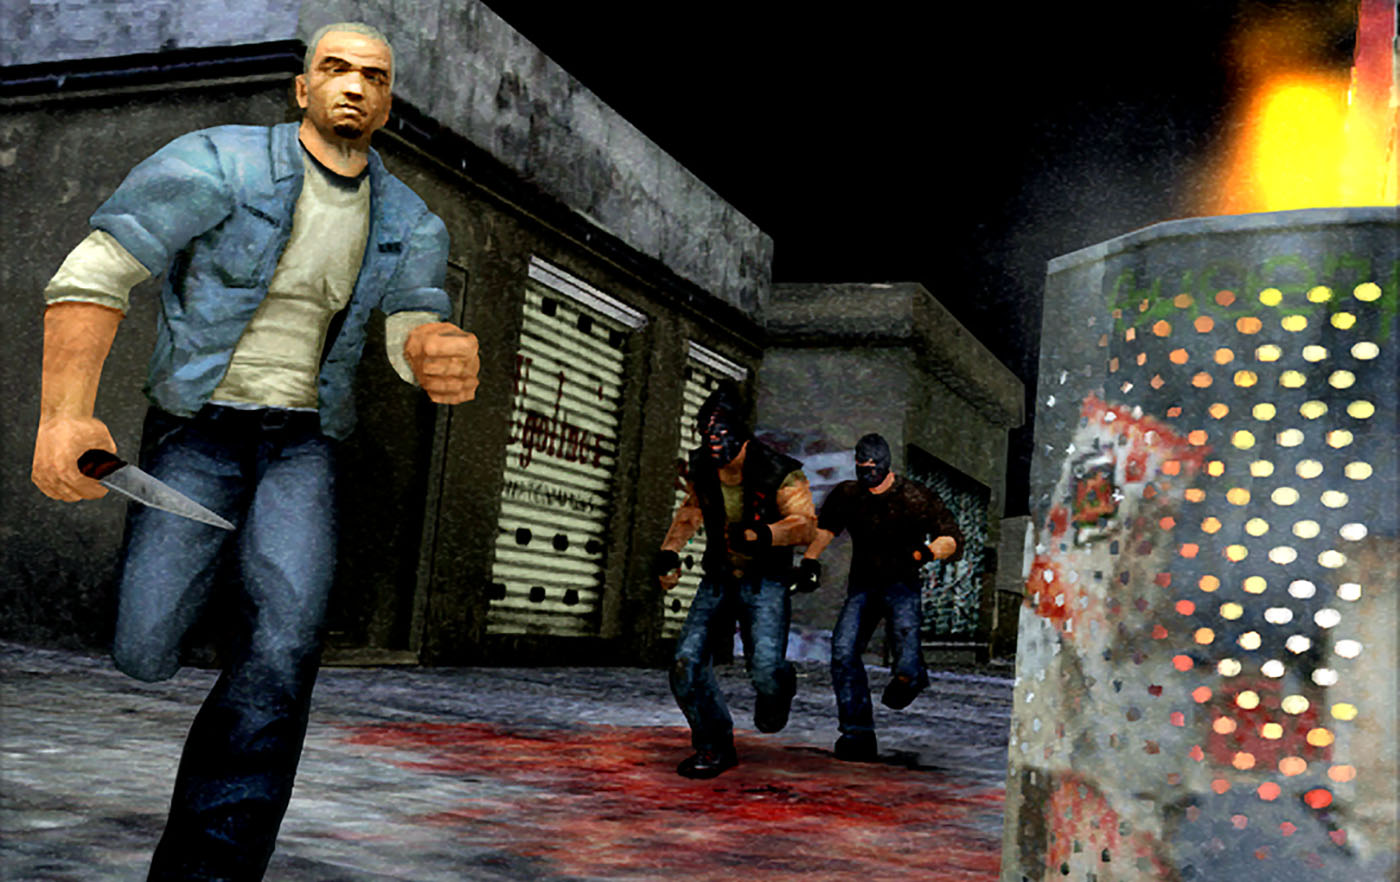 Sony brings PS2 classics 'Manhunt' and Bully' to the PS4